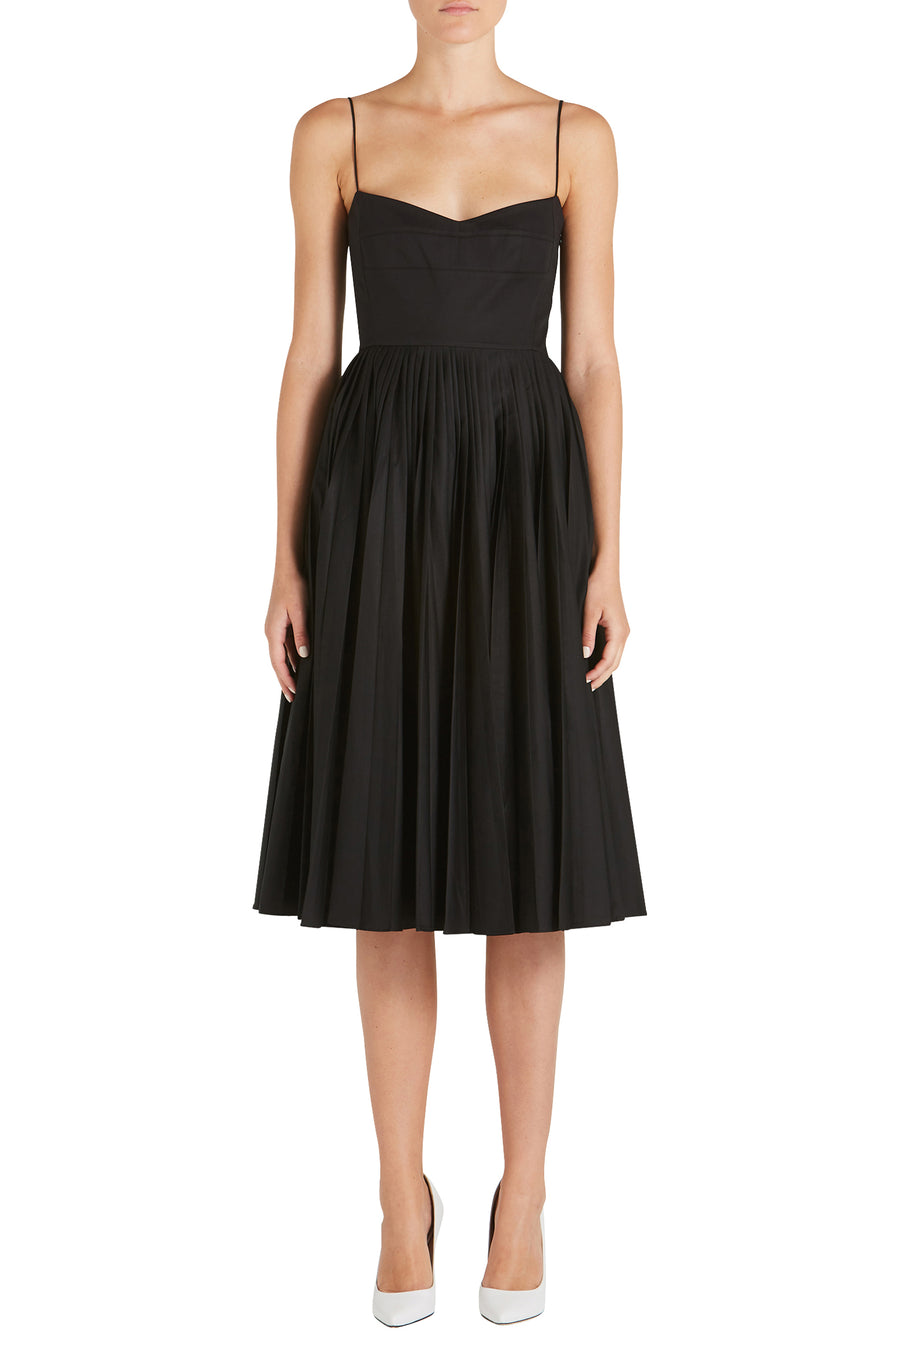 PAMELA PLEATED DRESS